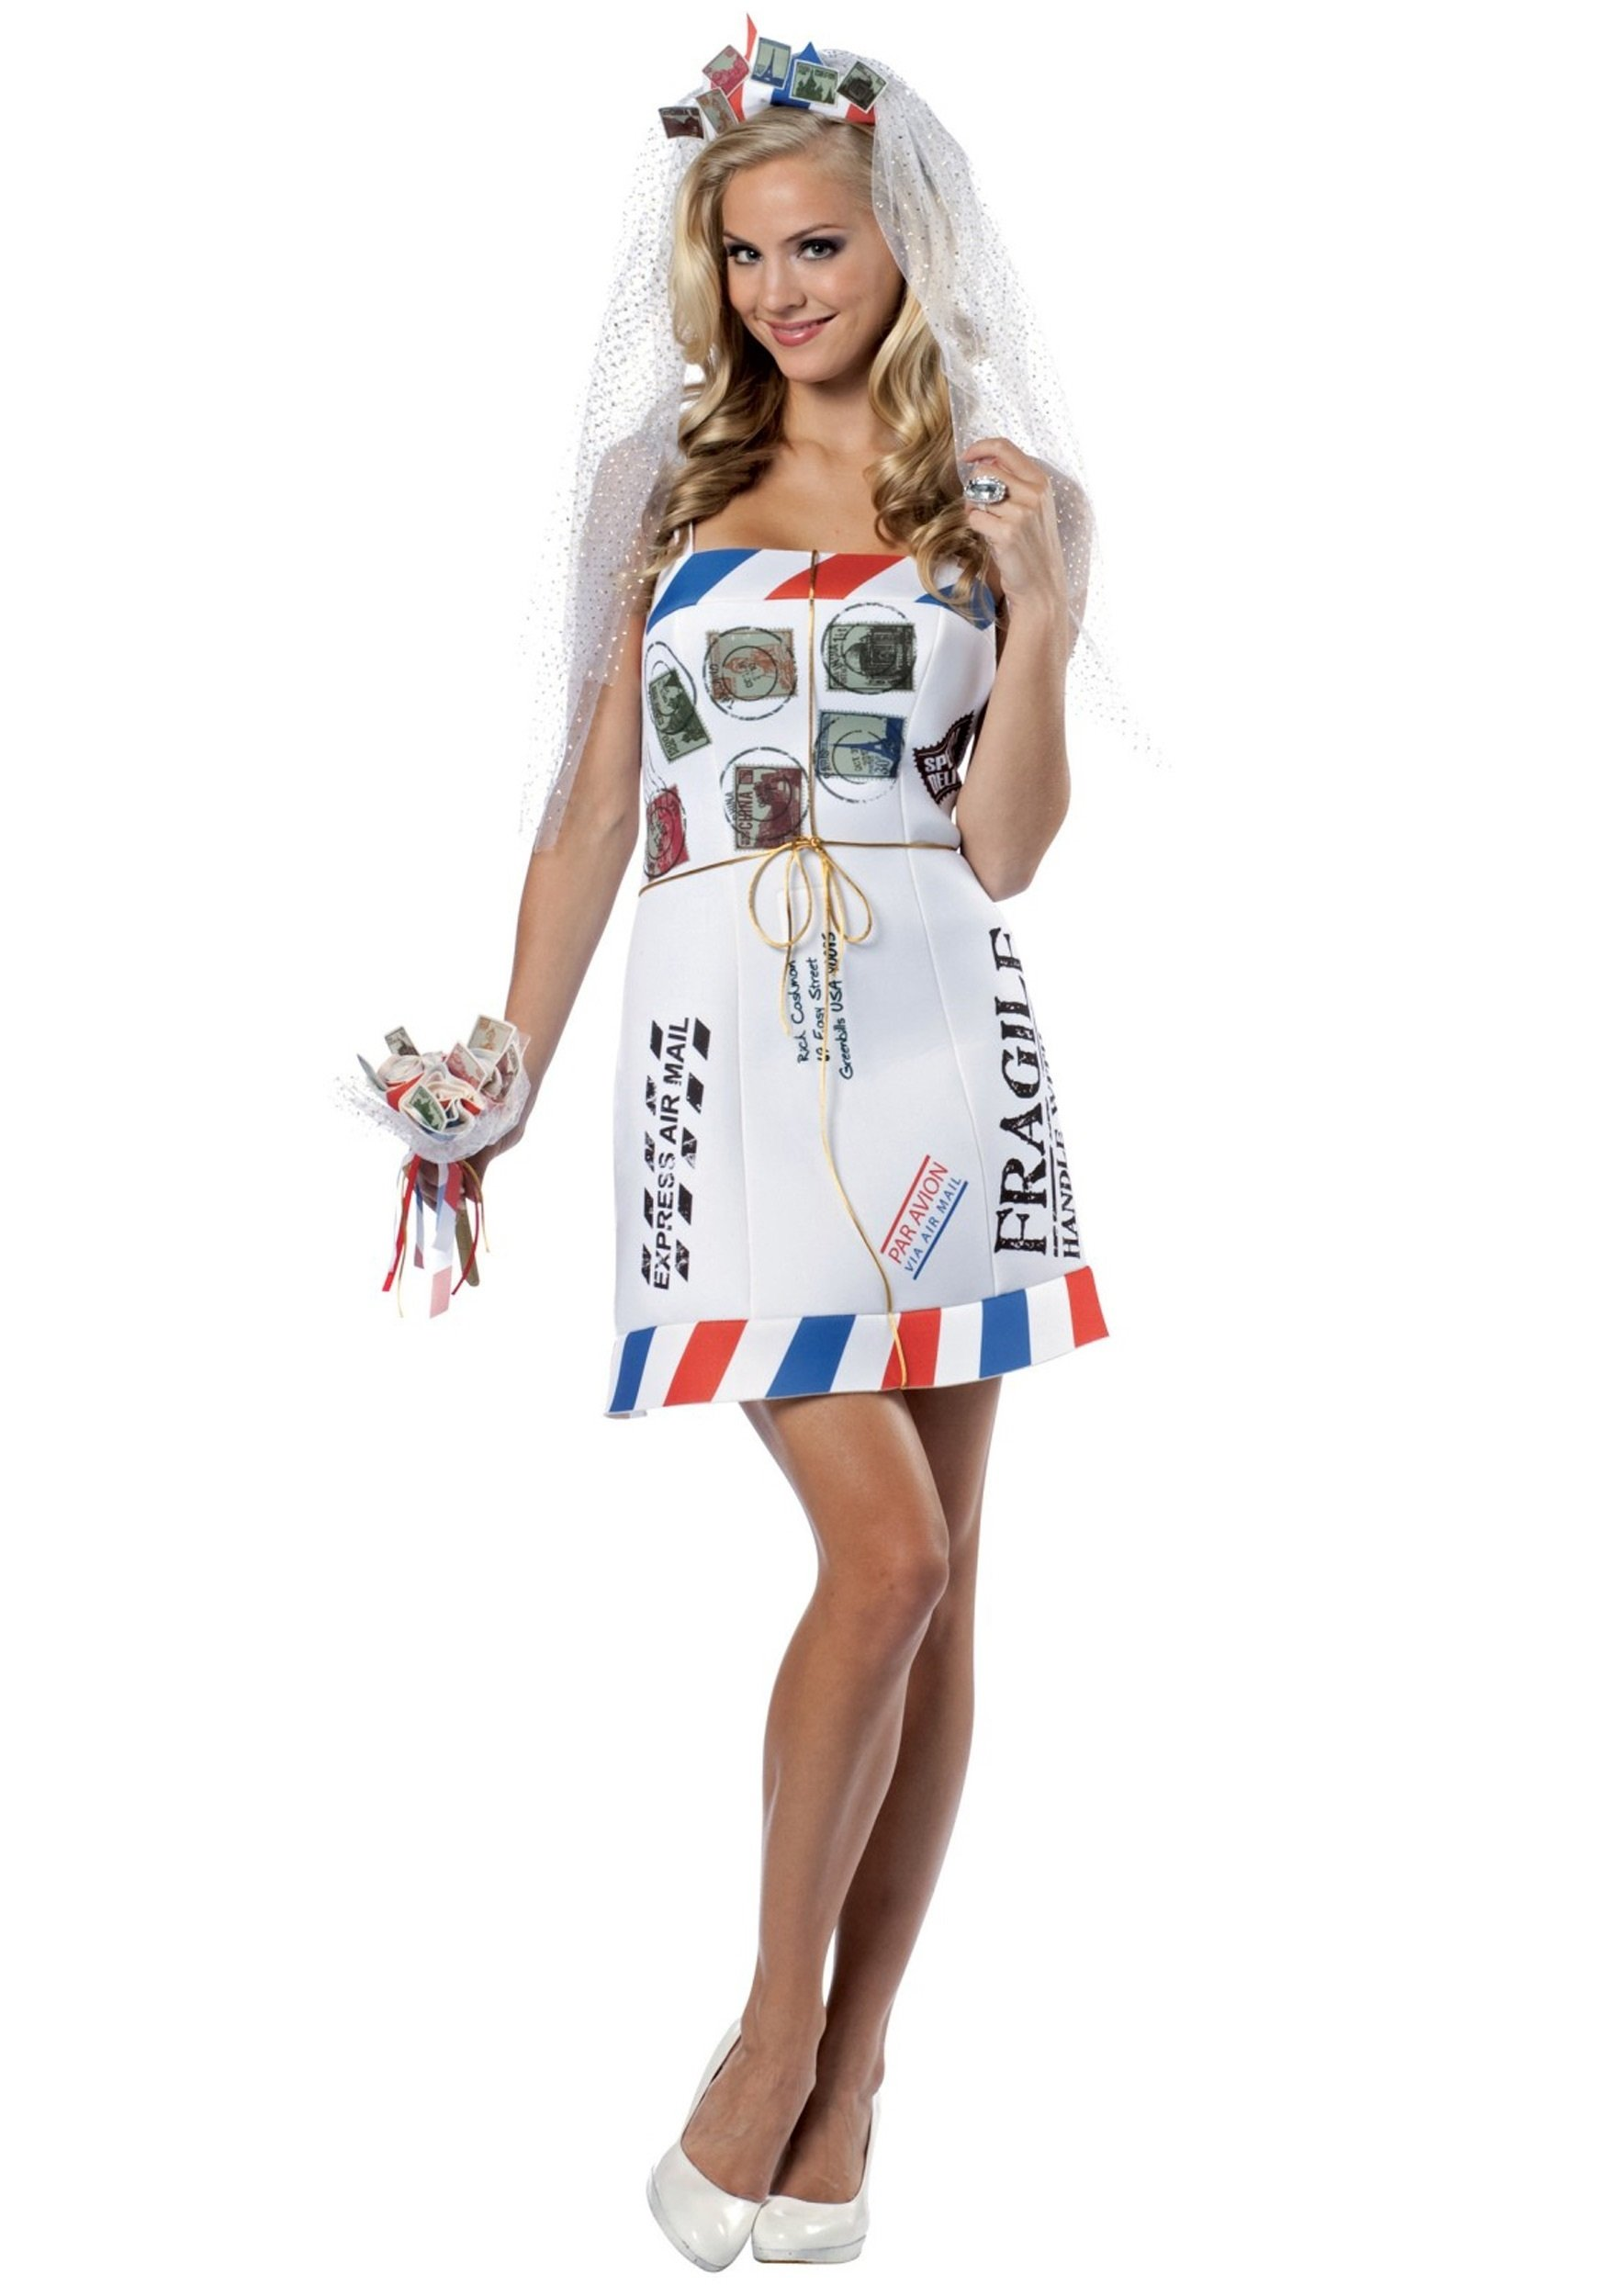 10 Beautiful Funny Female Halloween Costume Ideas funny mail order bride costume funny halloween costume ideas for women 1 2021